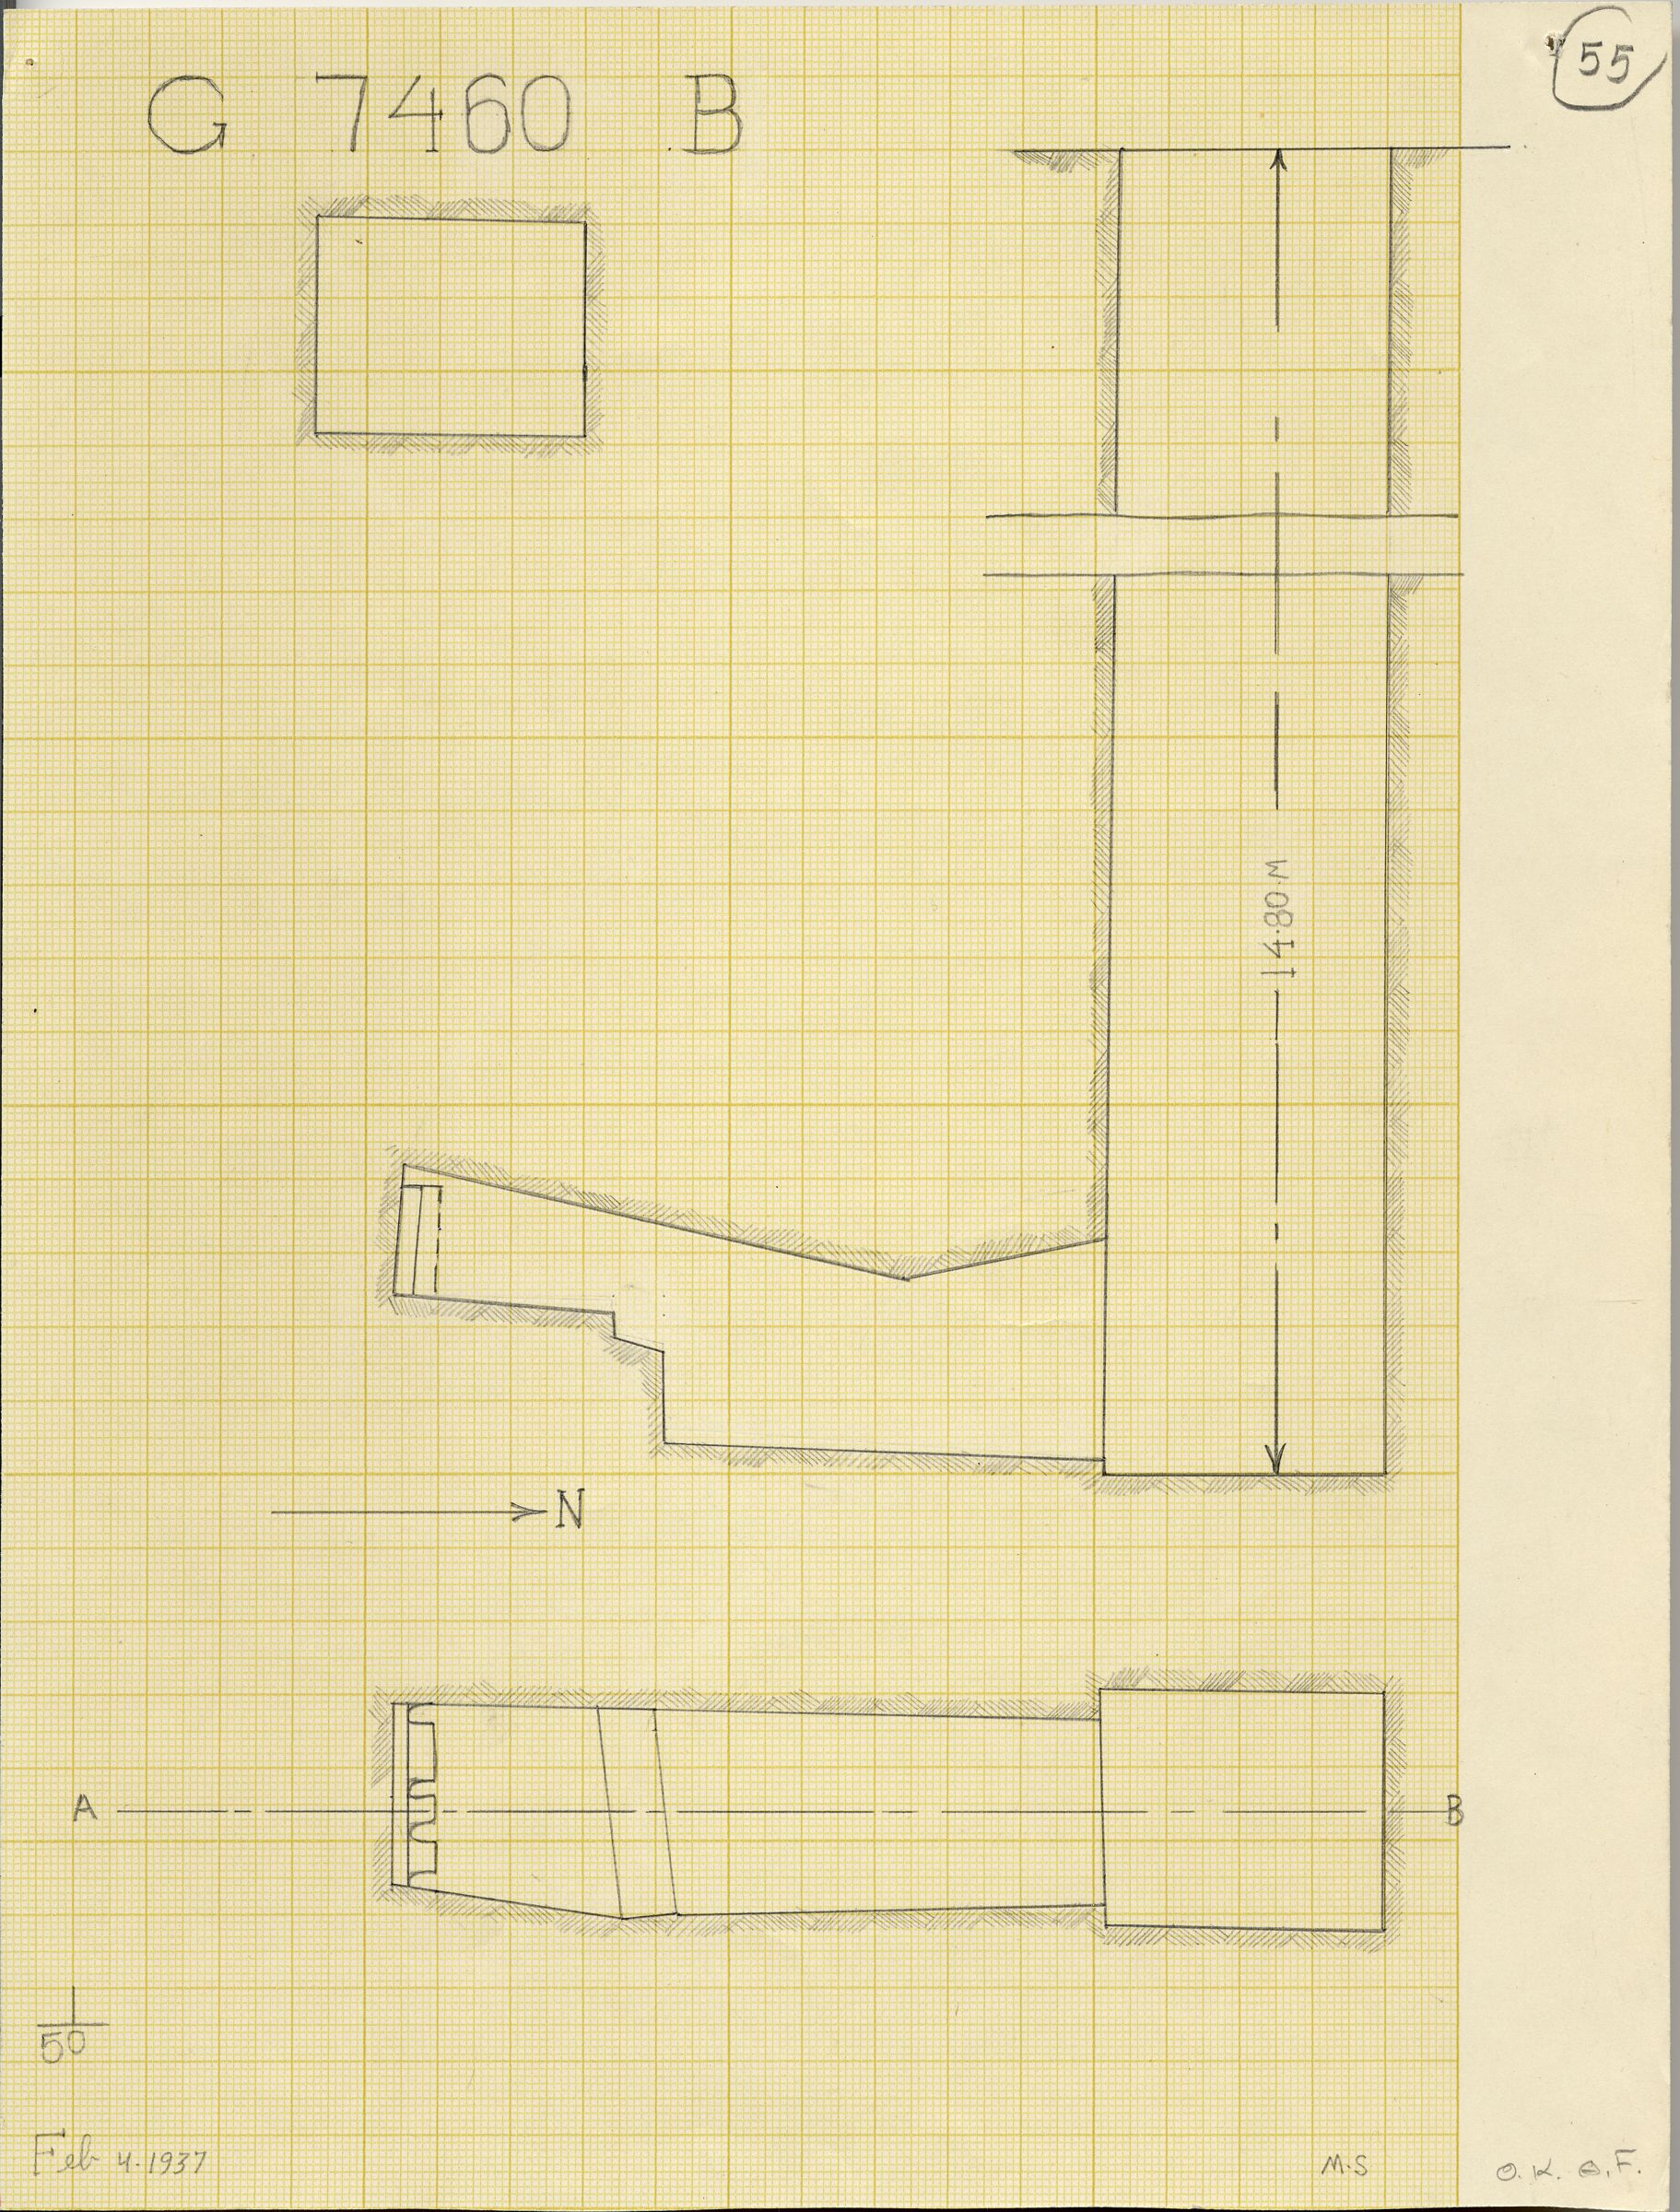 Maps and plans: G 7460, Shaft B